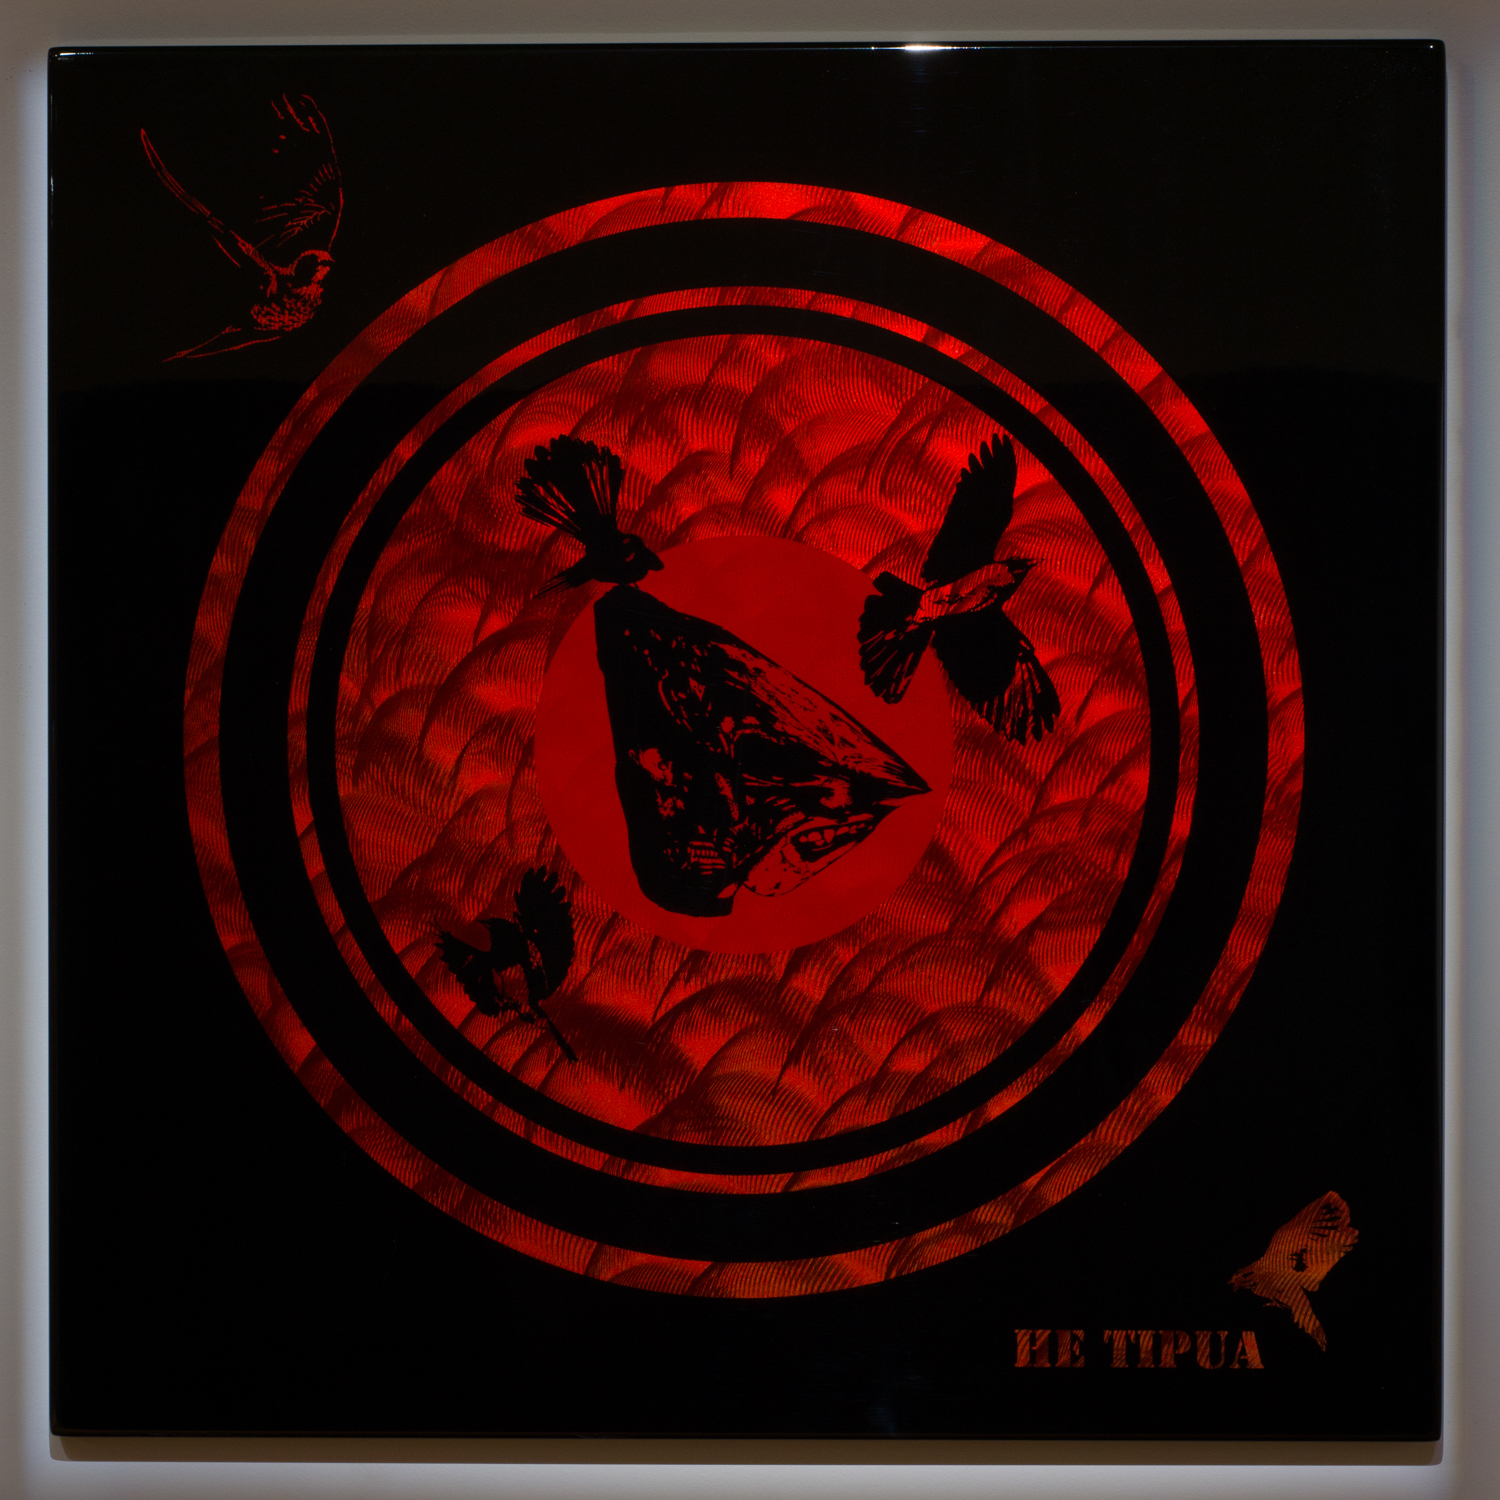 He Tipua    2012    Lacquer on stainless steel    1 × 1m